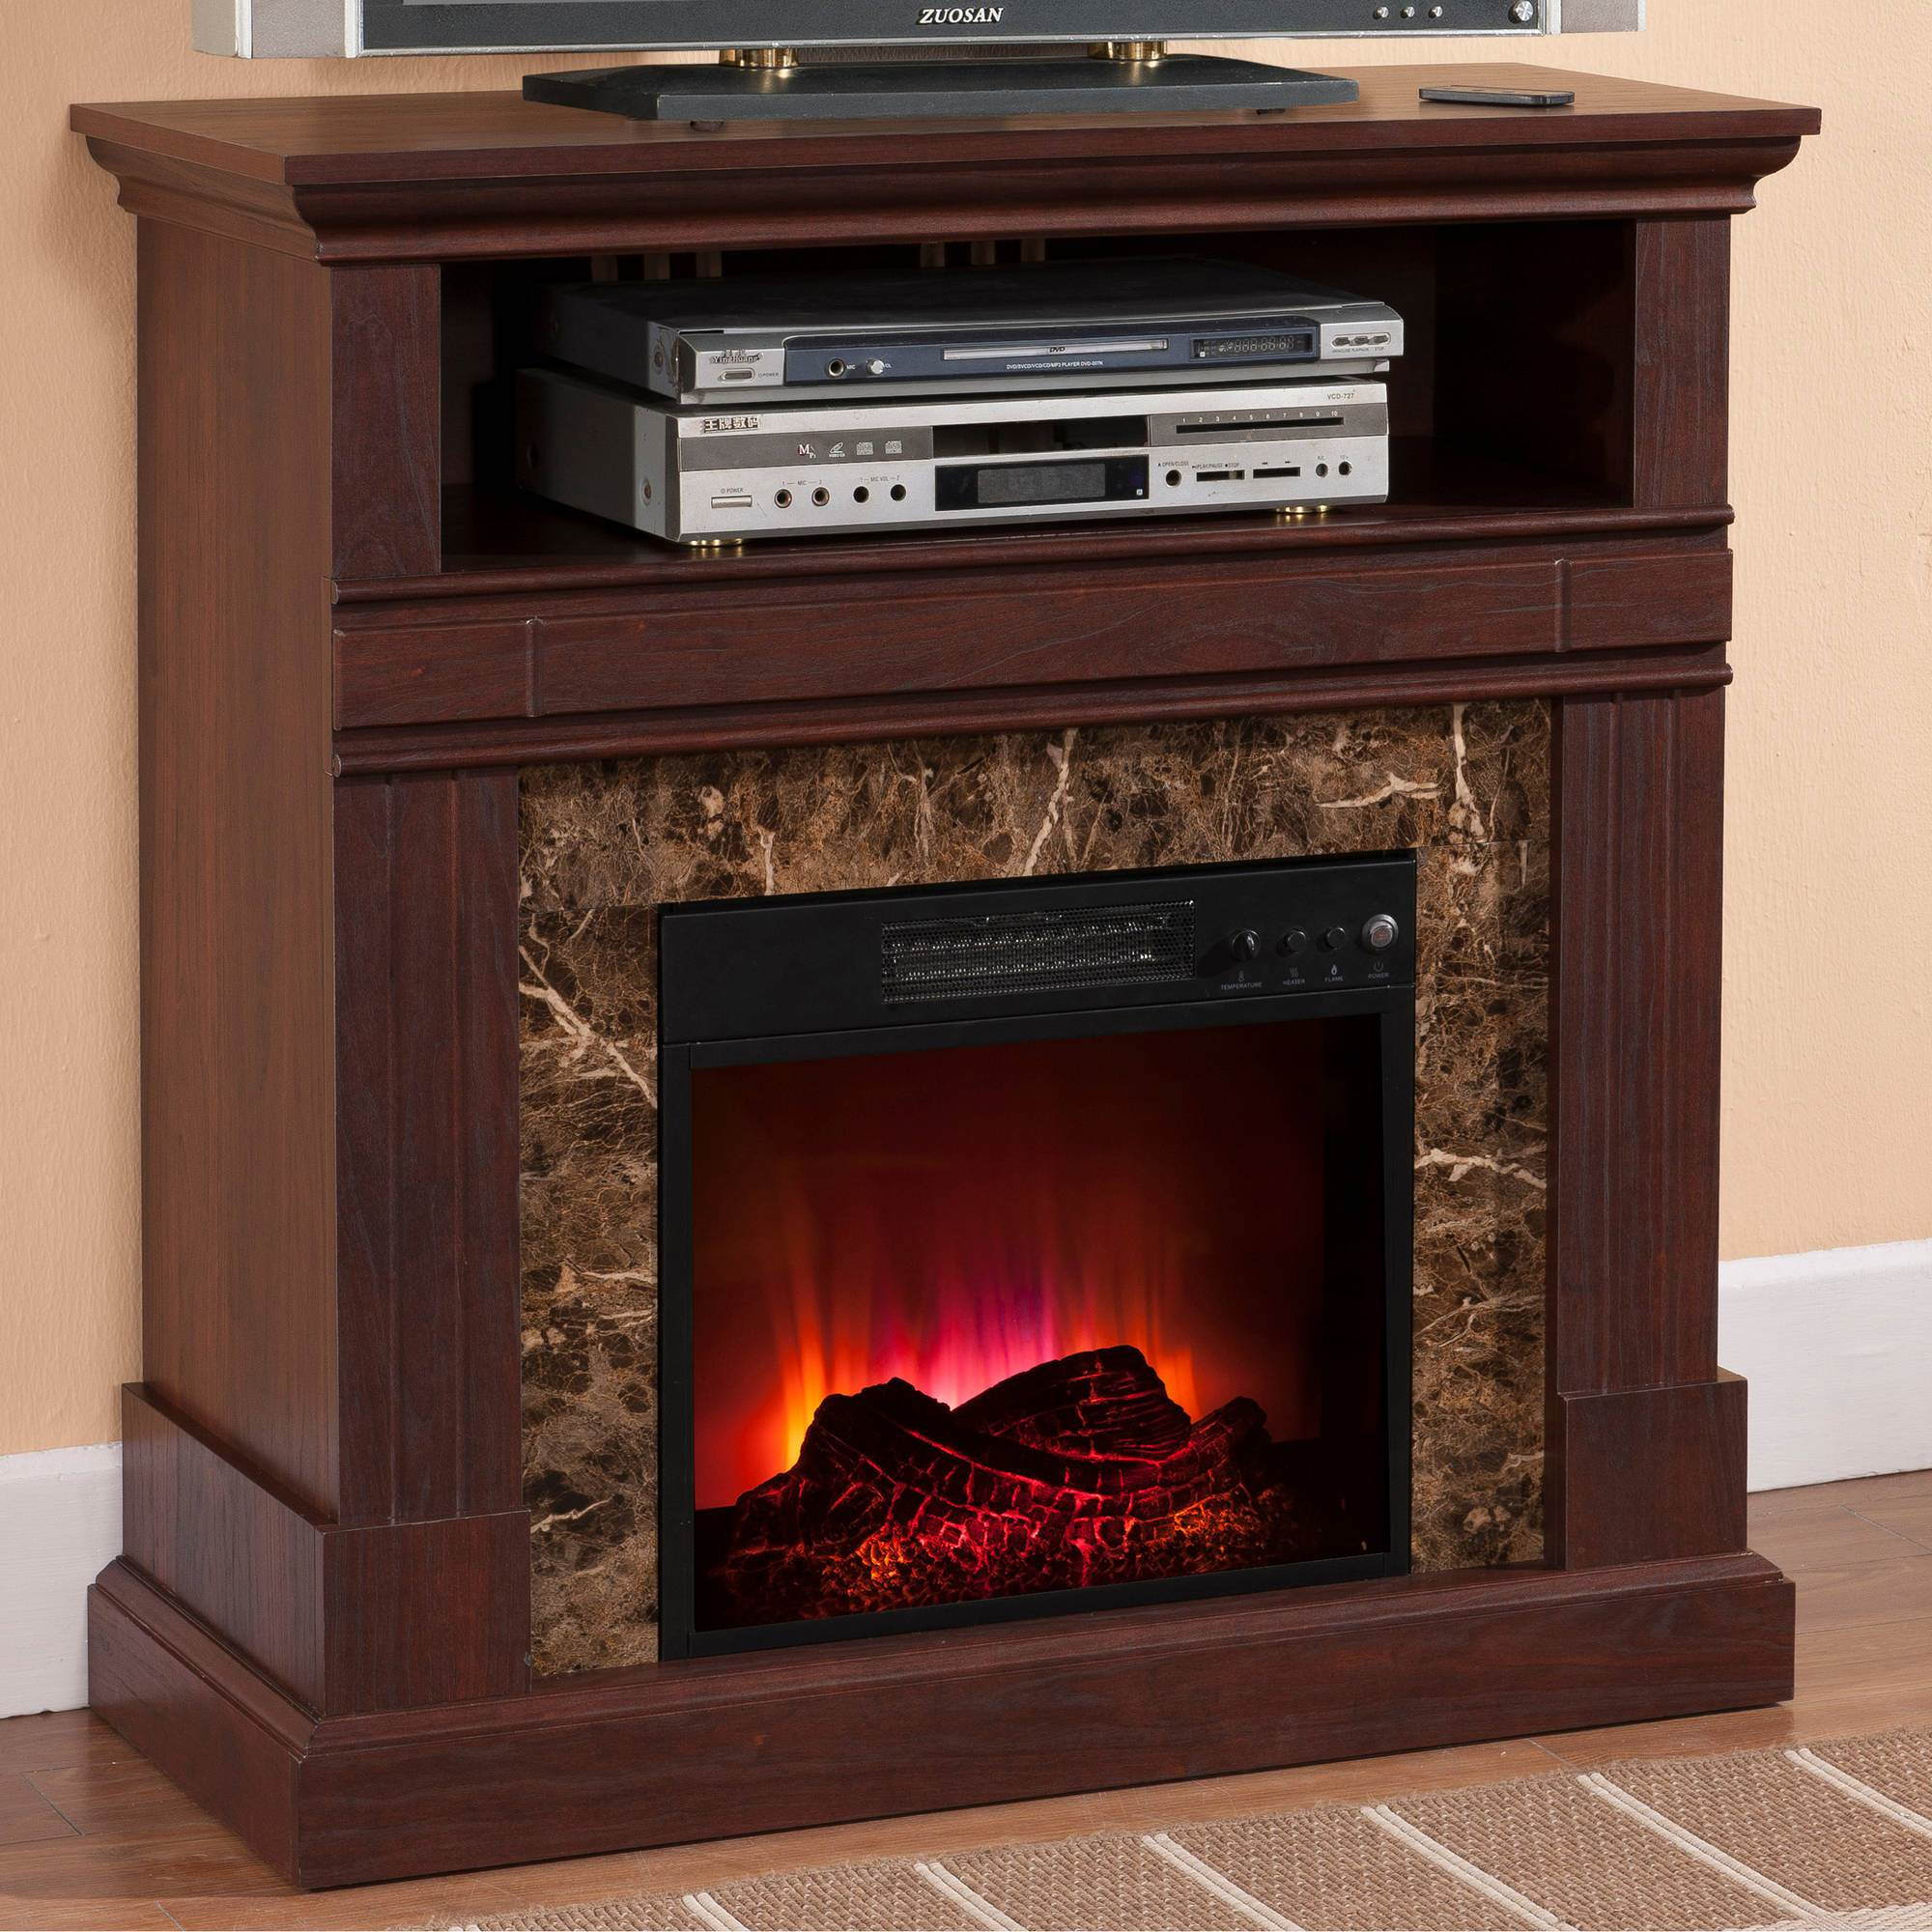 White Electric Fireplace Tv Stand Fresh White Electric Fireplace Tv Stand